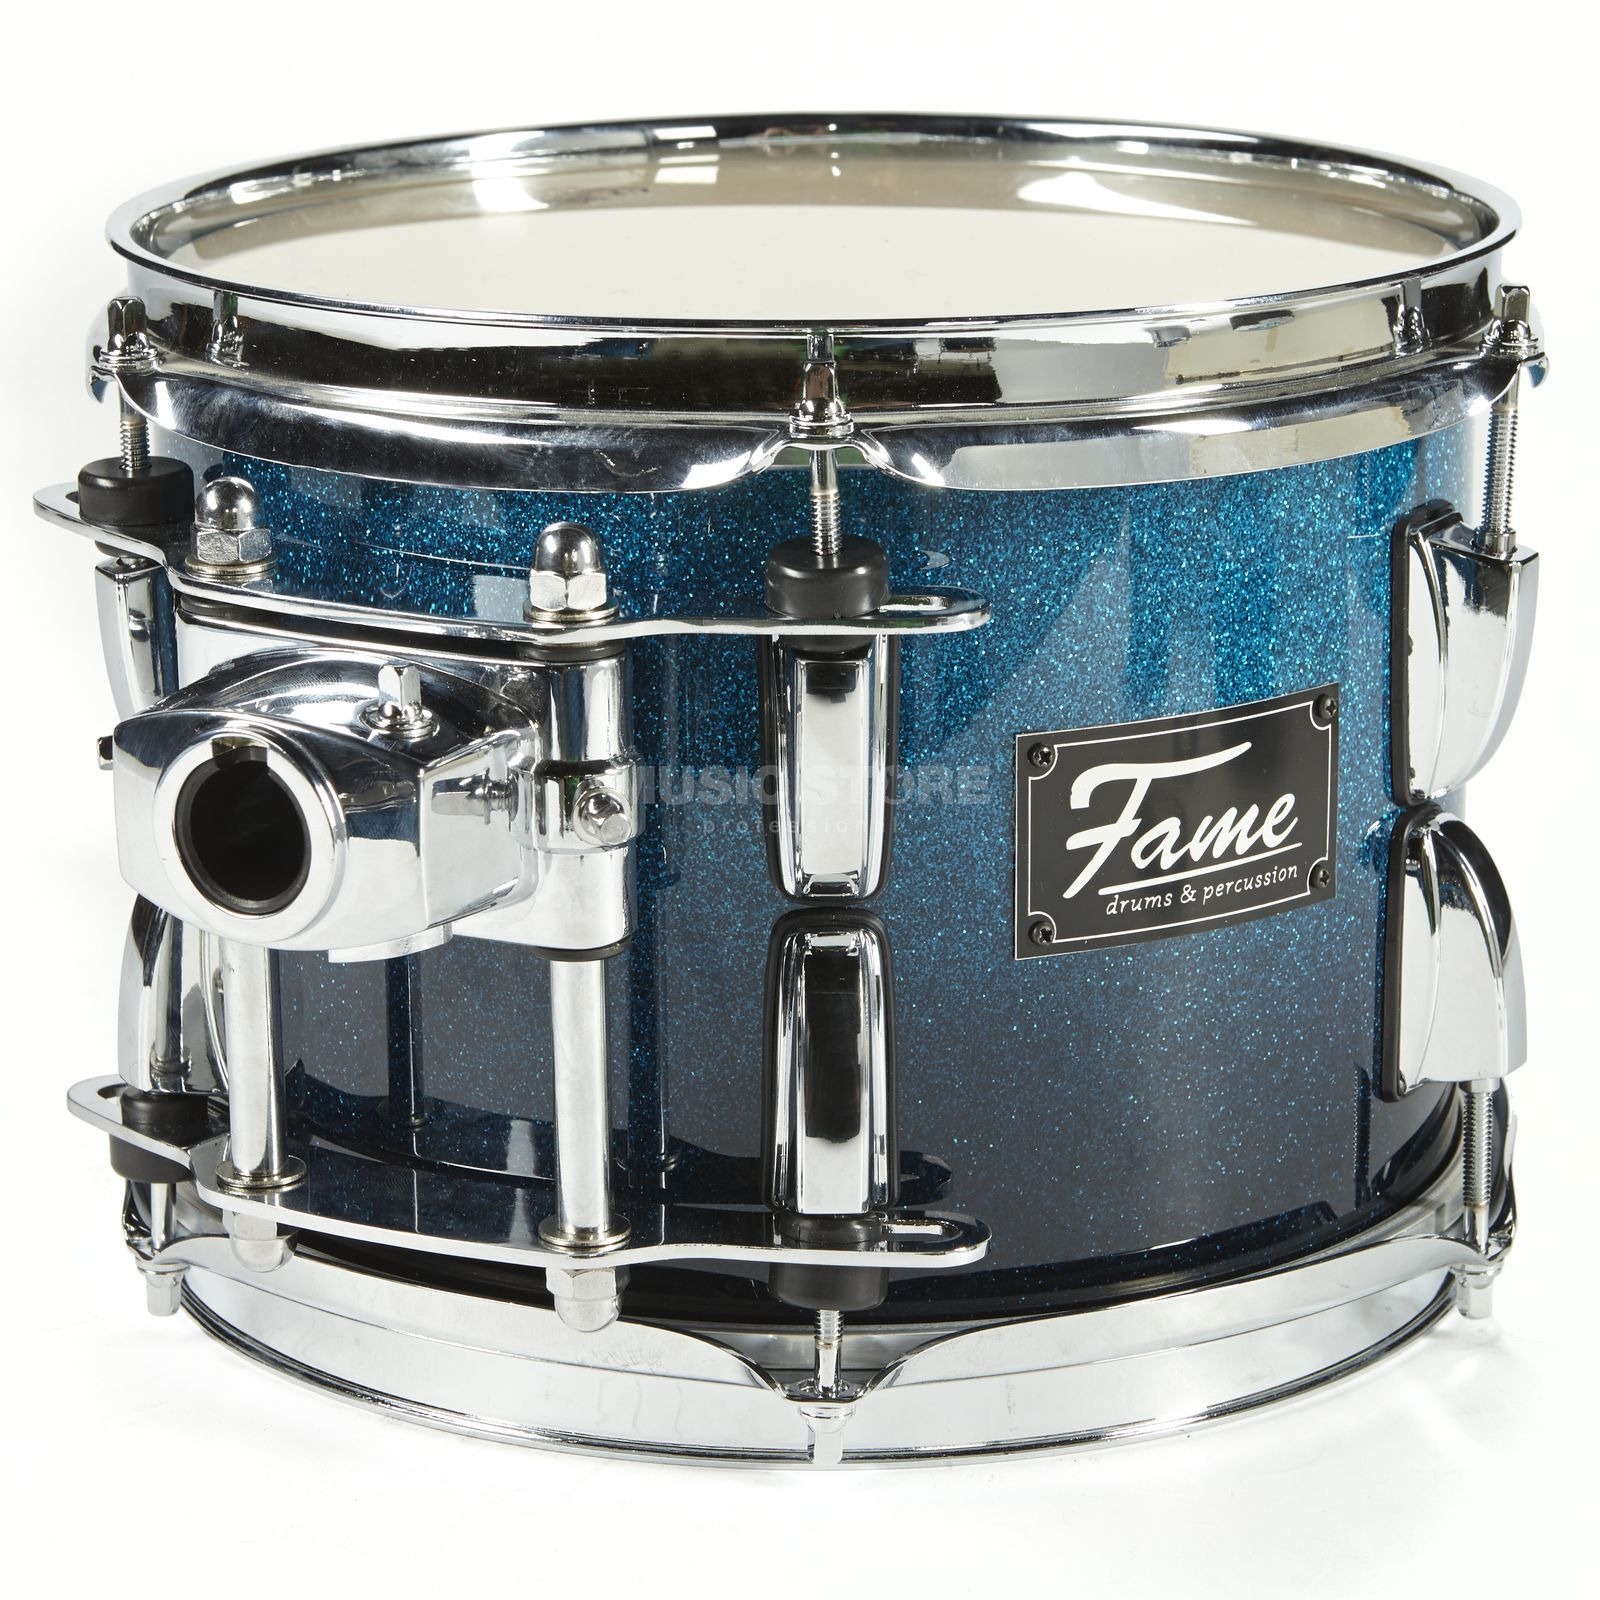 "Fame Fire Tom 13""x9"", #Blue Fade Sparkle Изображение товара"